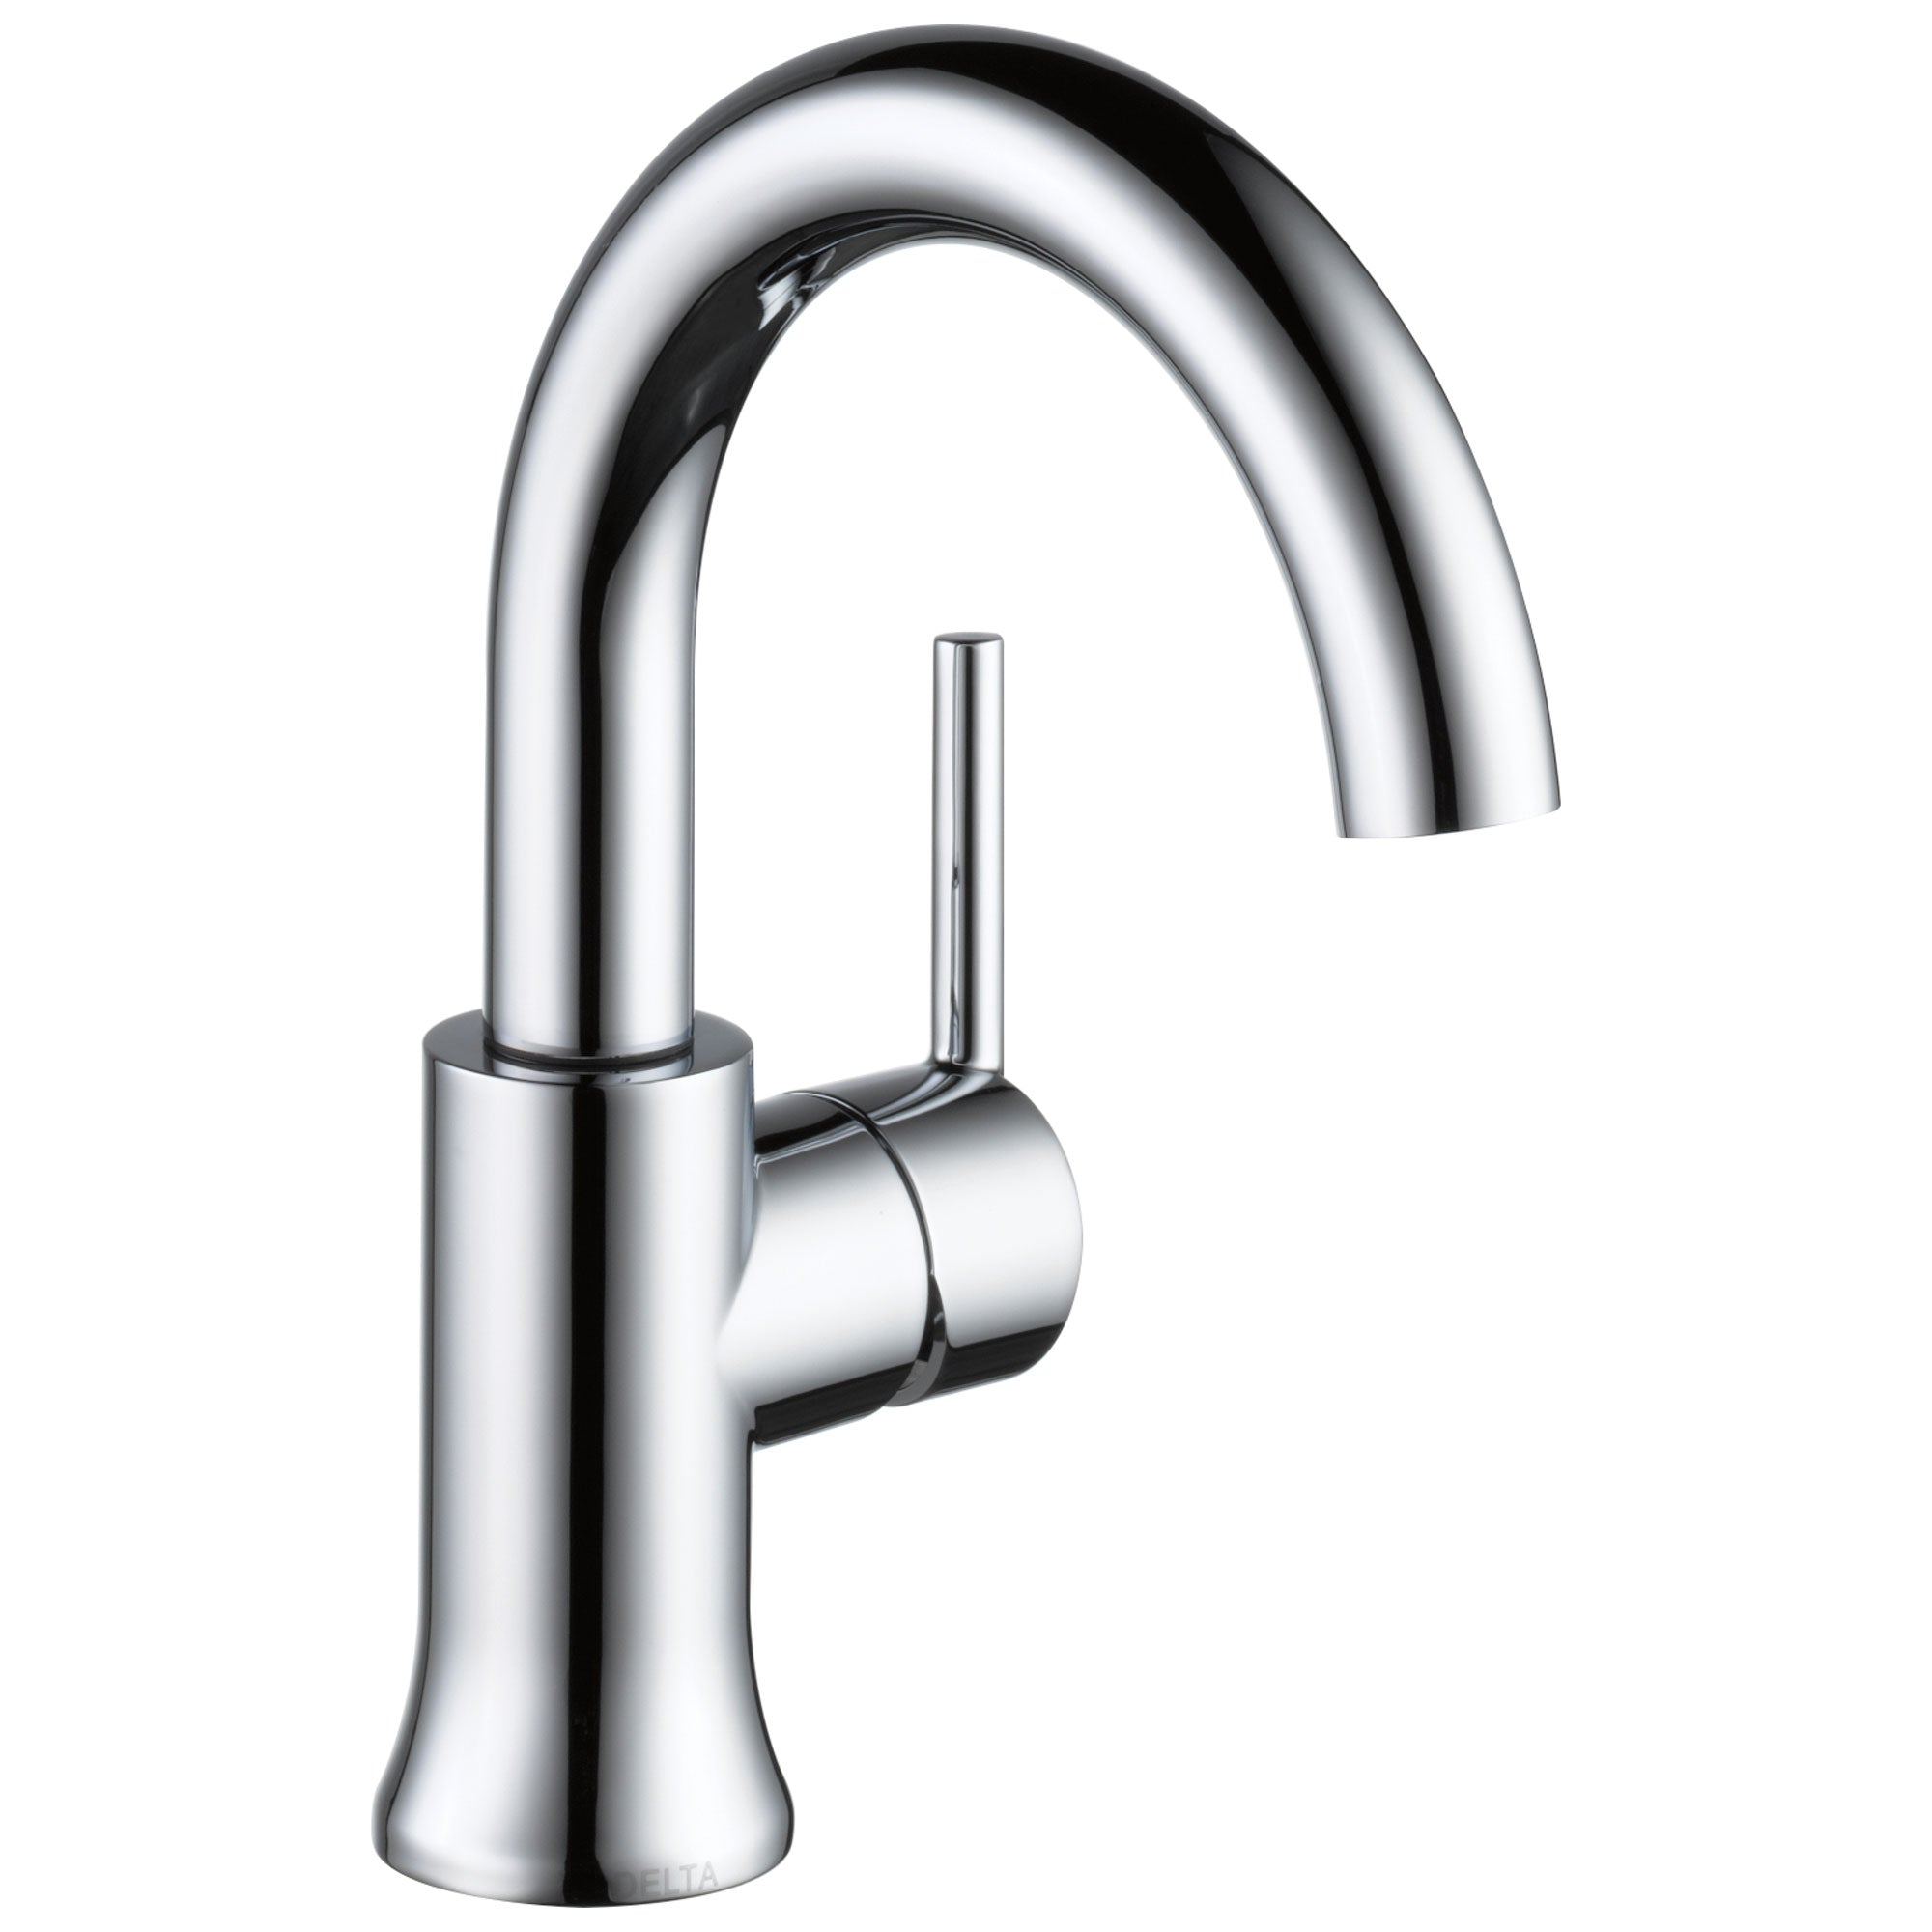 Delta Trinsic Collection Chrome Finish Single Handle Modern High-Arc Spout Lavatory Bathroom Sink Faucet with Metal Pop-up Drain D559HAGPMDST